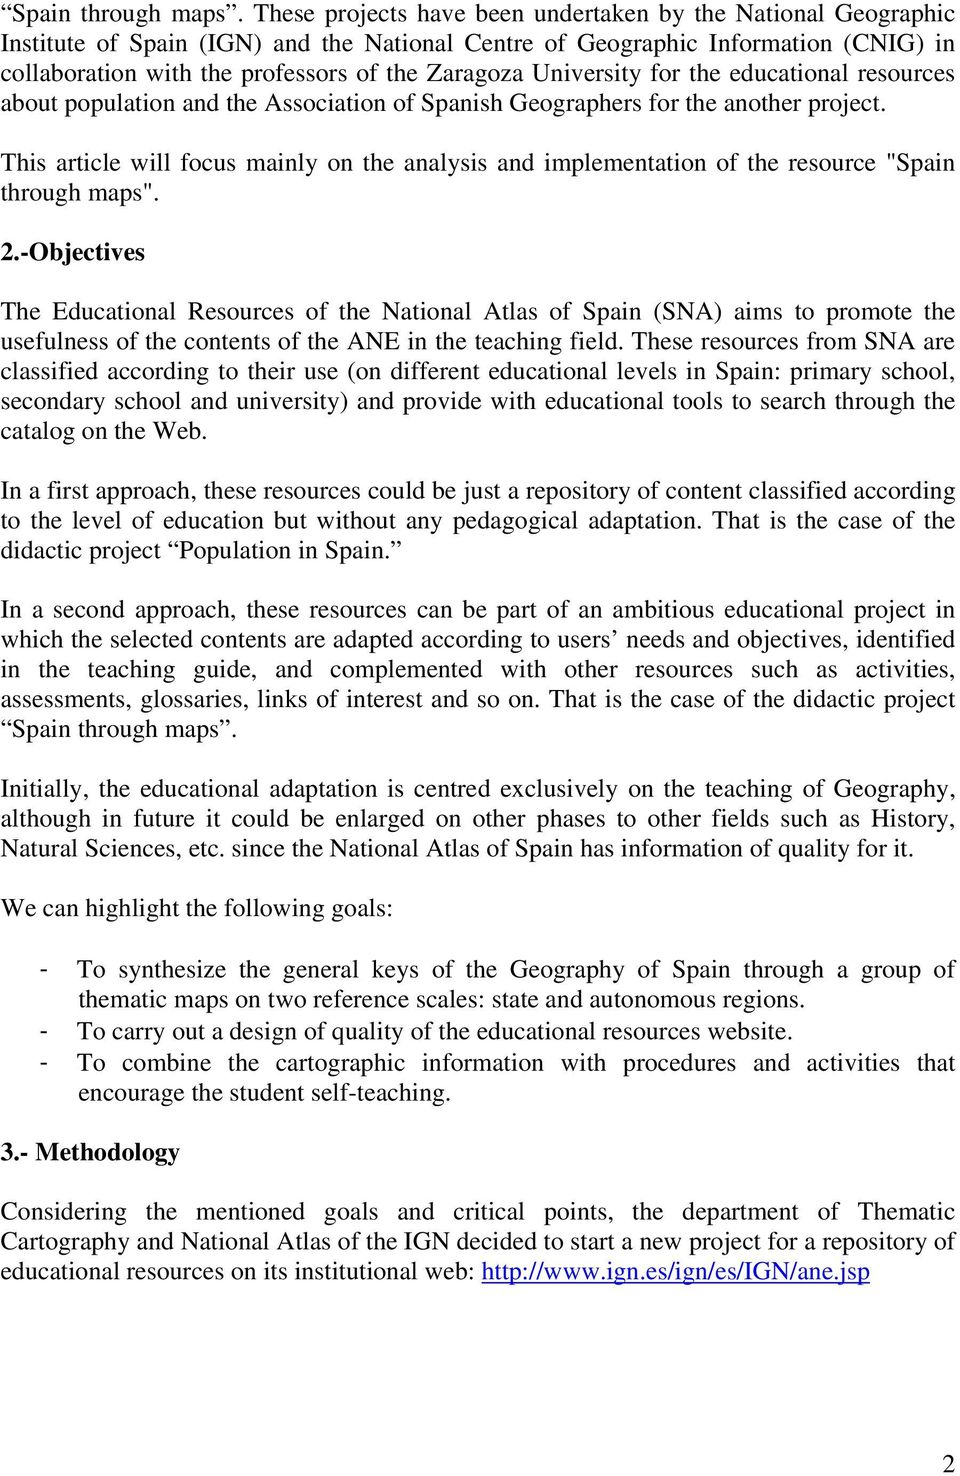 University for the educational resources about population and the Association of Spanish Geographers for the another project.